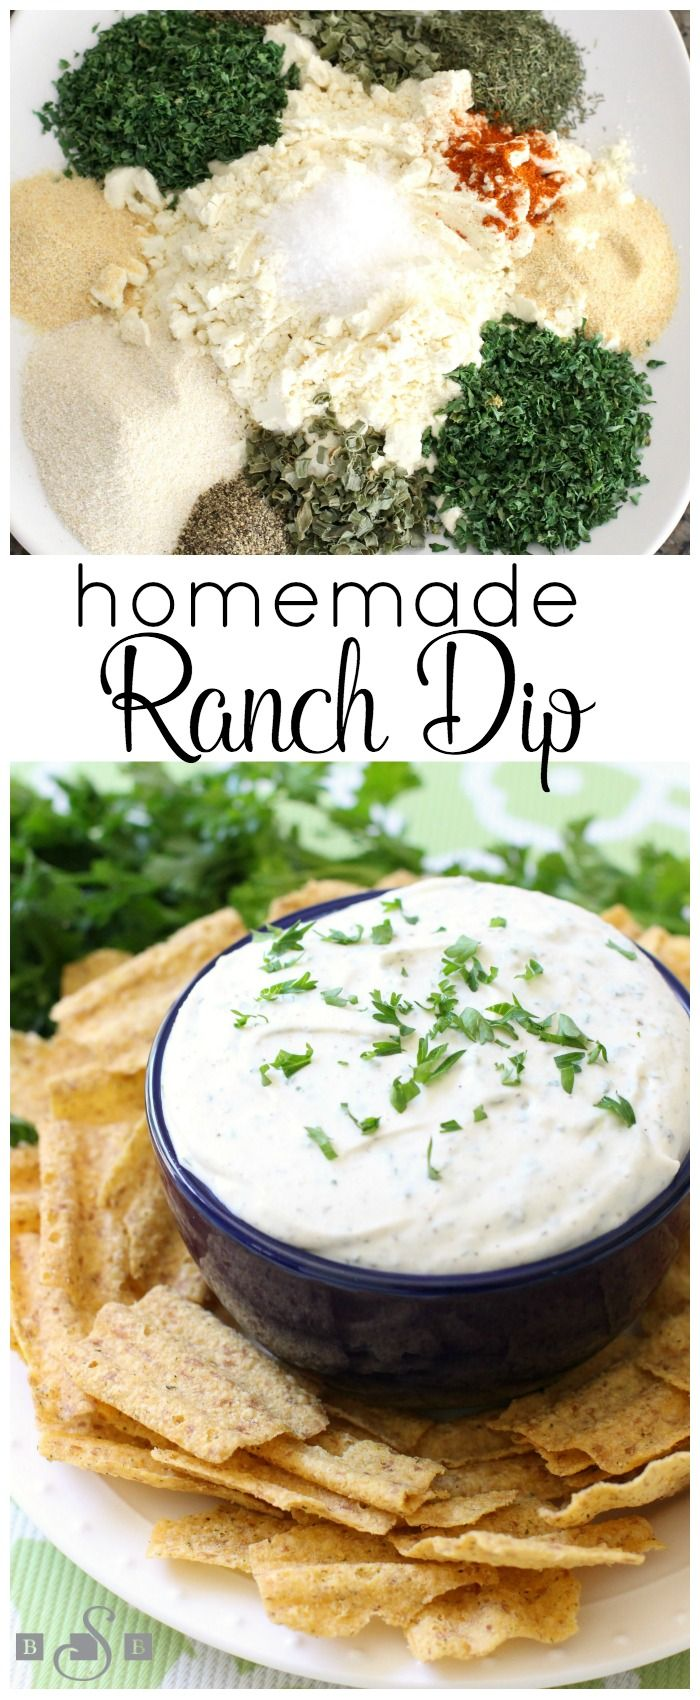 Homemade Ranch Dip Butter With A Side Of Bread Did You Know Making Your Own Dry Ranch